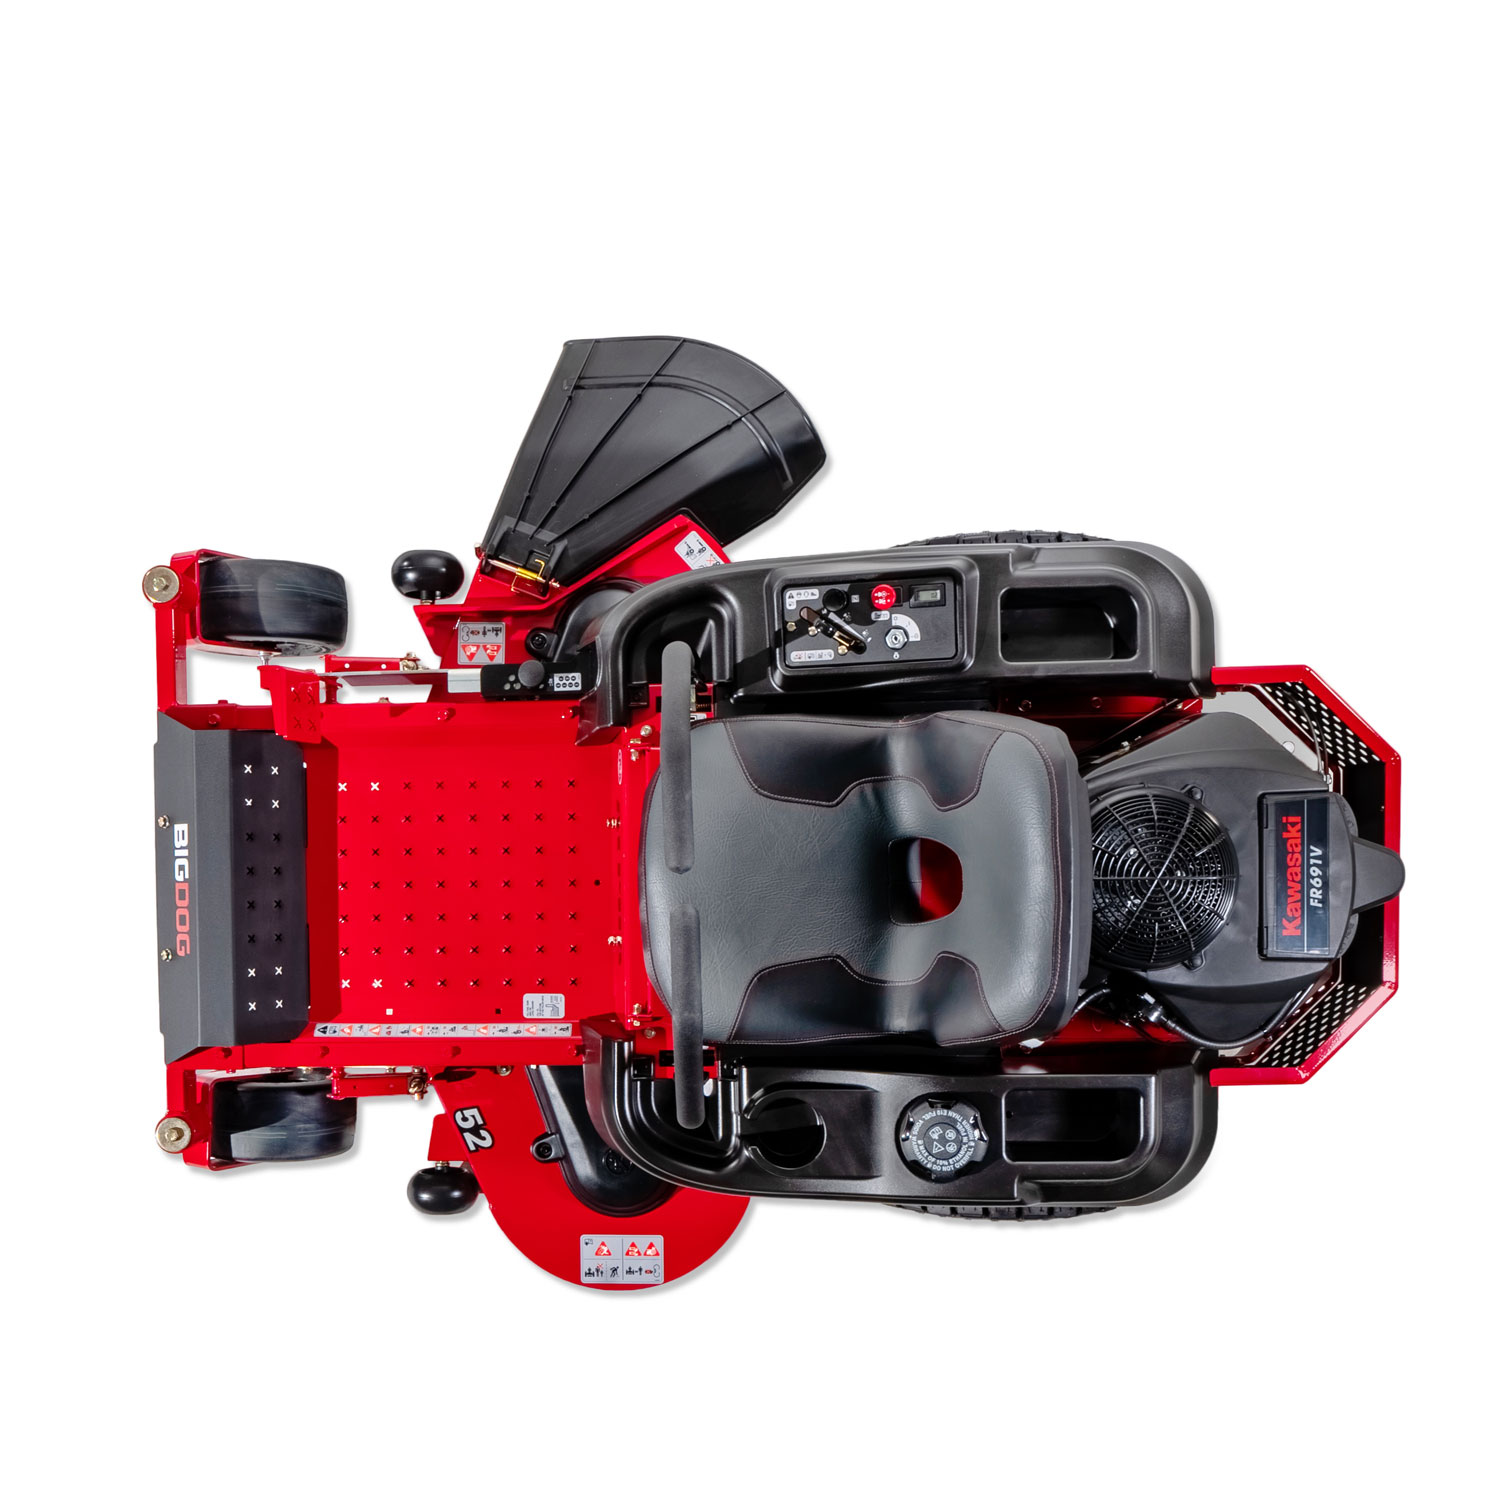 Image of a red BigDog mower from above on a white background